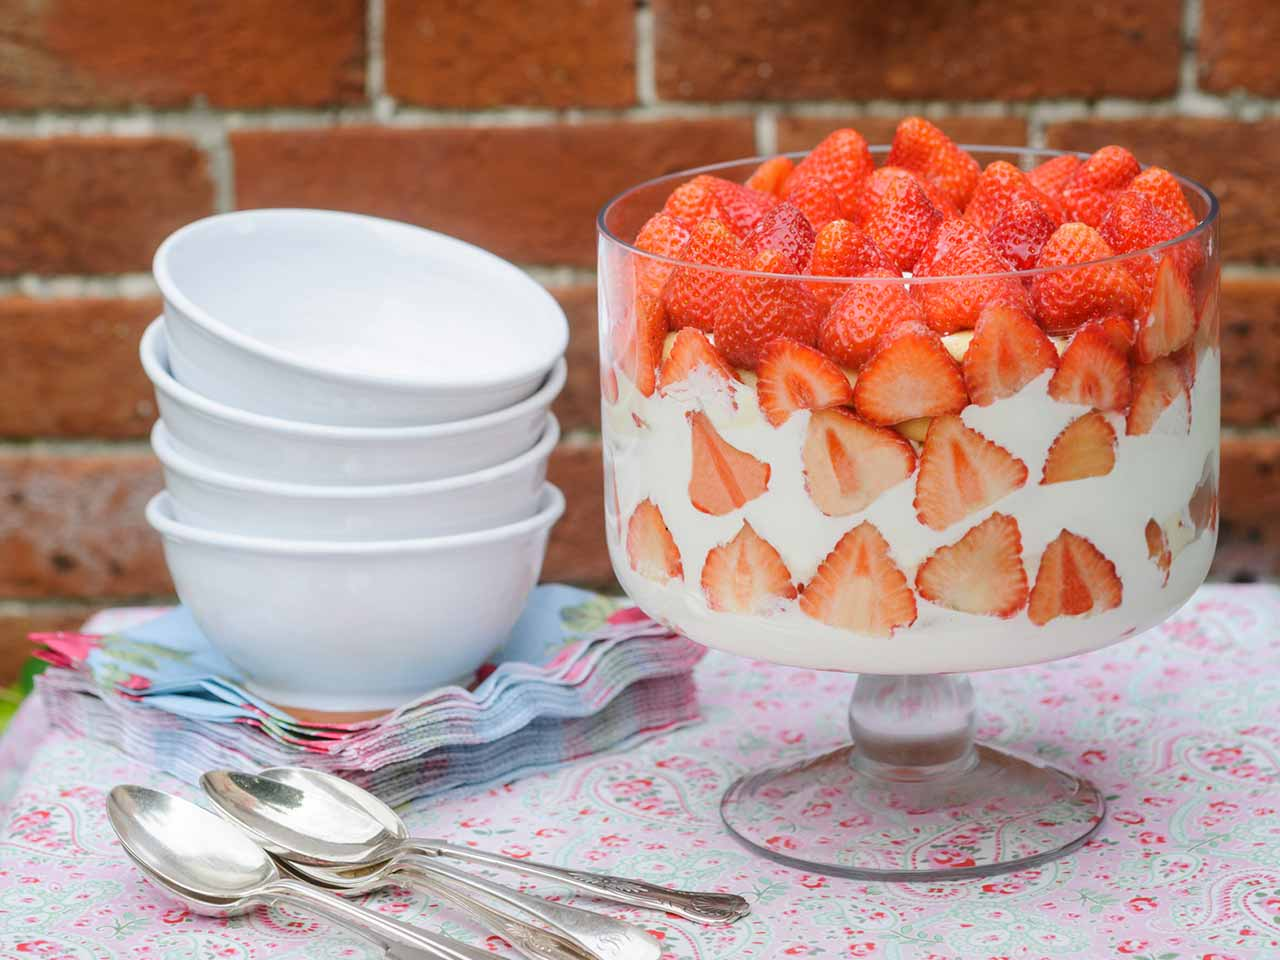 Sweet Eve strawberry trifle